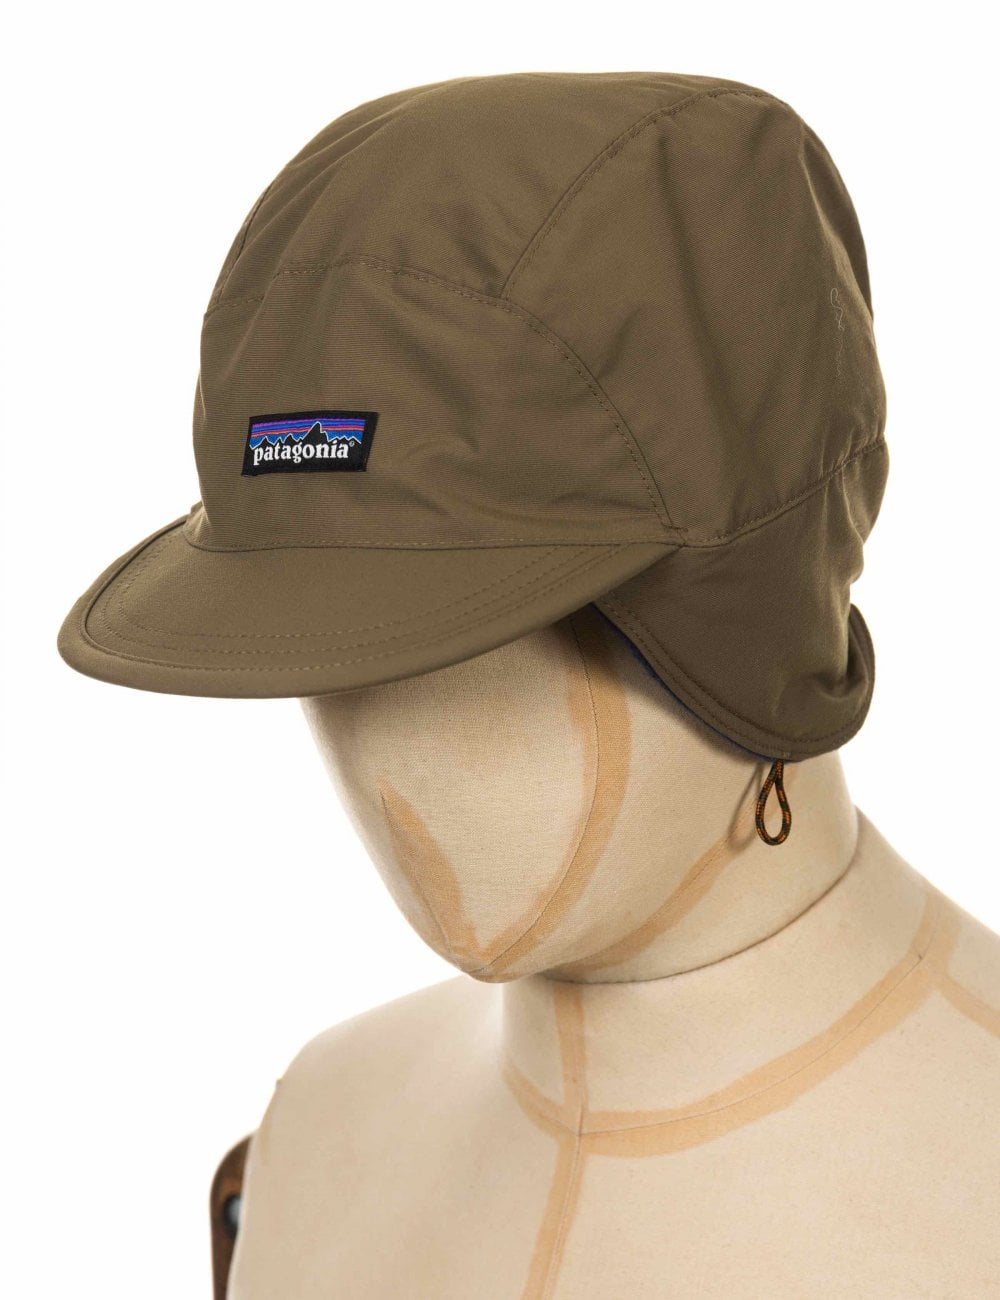 d61b4056087 Patagonia Shelled Synchilla Duckbill Cap - Dark Ash - Accessories ...